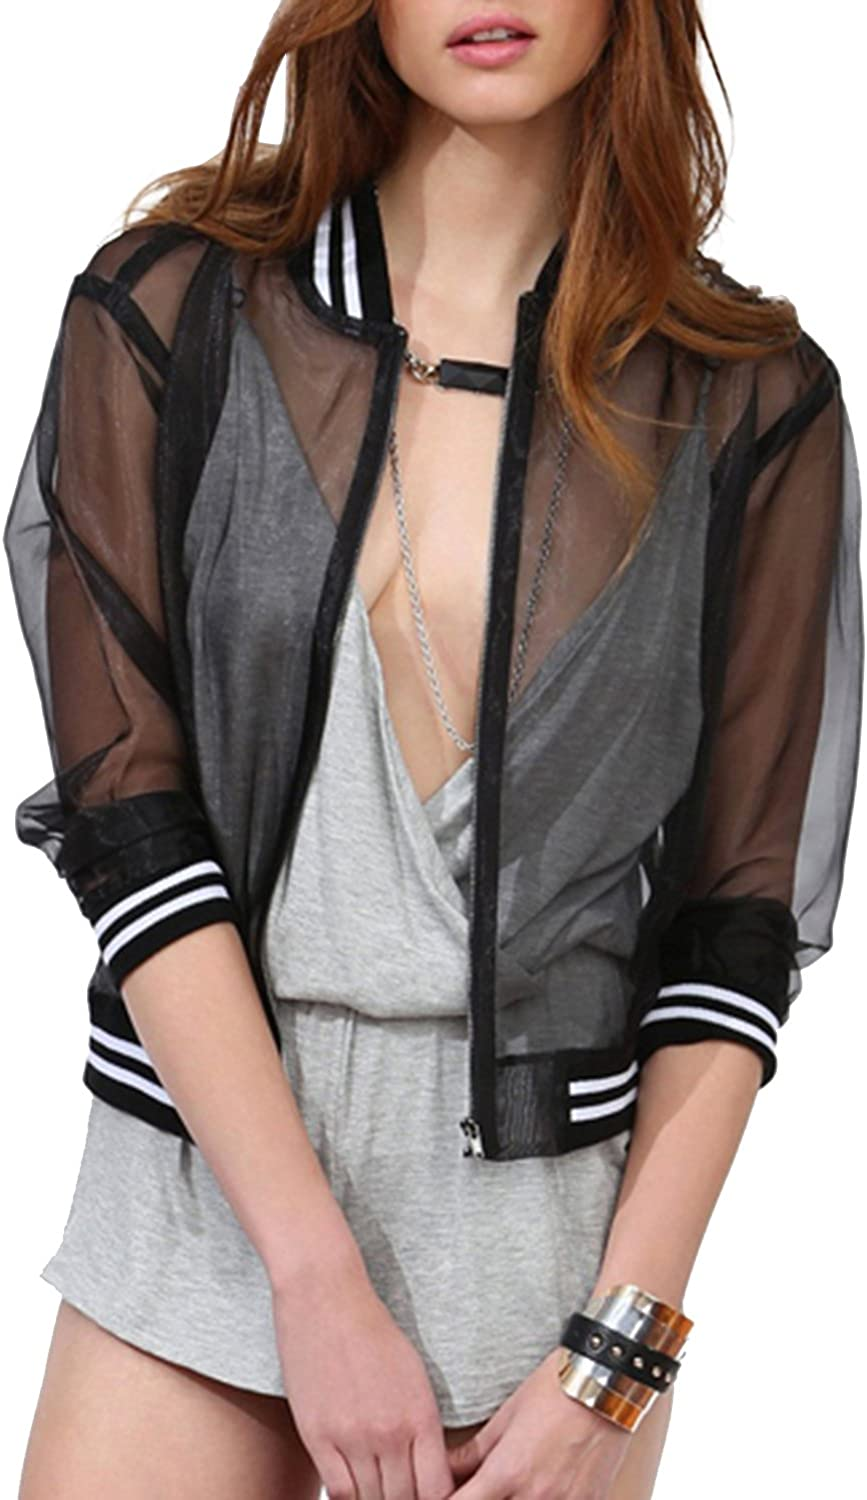 HaoDuoYi Womens Mesh Sheer Open Front Color Block Sports Cover Up Shirt Top